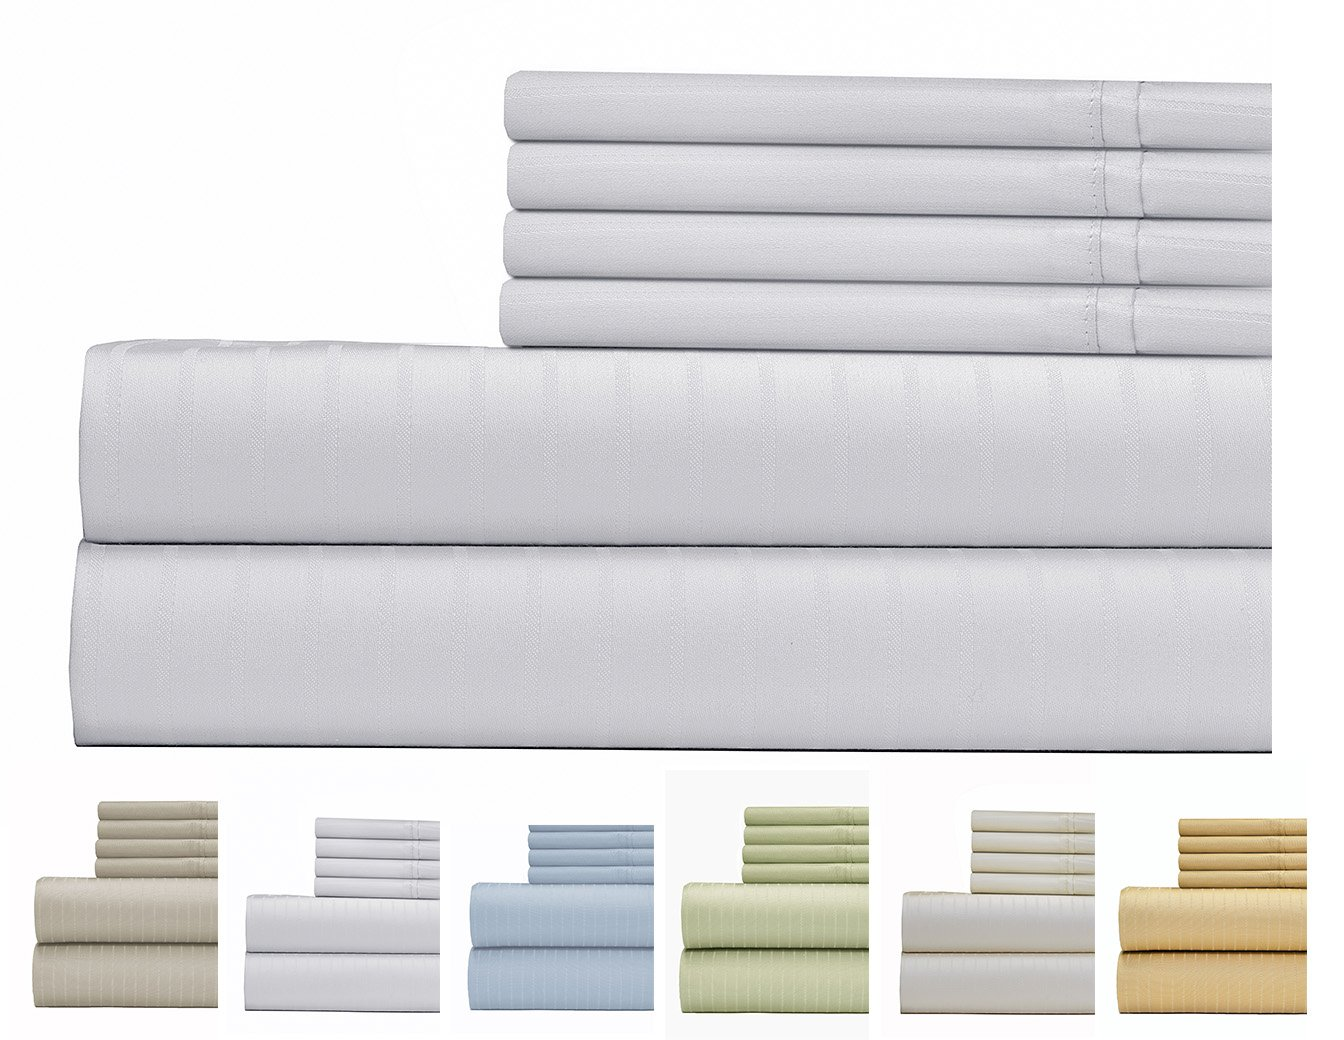 700 Thread Count Cotton Rich Bed Sheet, Pin Stripe 6 Piece Bedding Sheet Set, Hotel Quality Sheet Set with 2 Extra Bonus Pillow Cases, 15 inch Elastic Deep Pocket Fitted Sheet - Queen - White